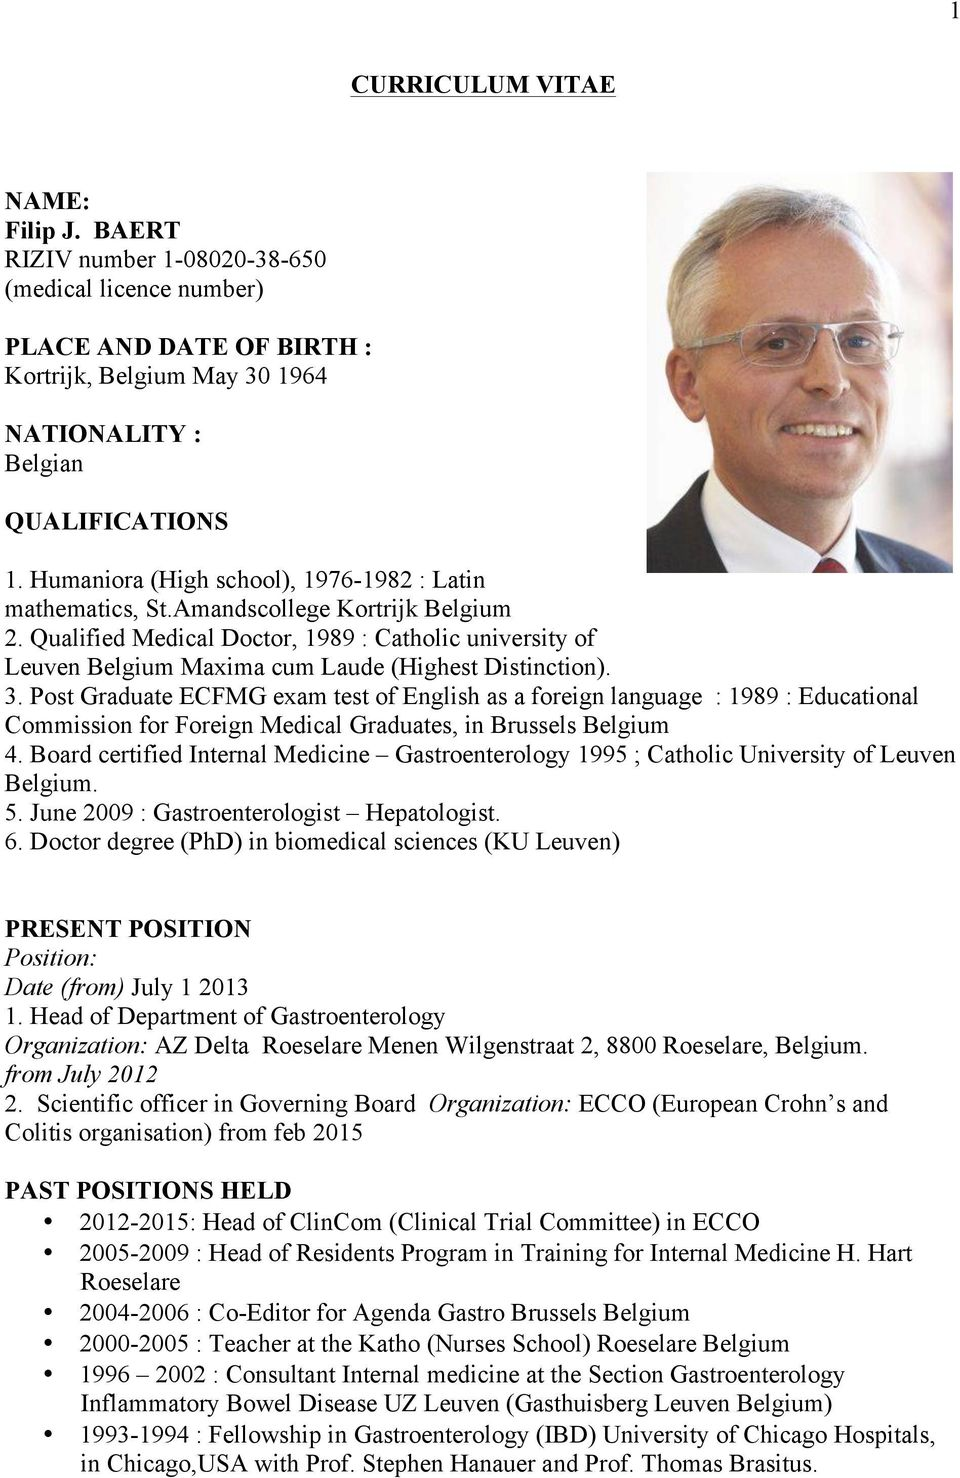 Qualified Medical Doctor, 1989 : Catholic university of Leuven Belgium Maxima cum Laude (Highest Distinction). 3.